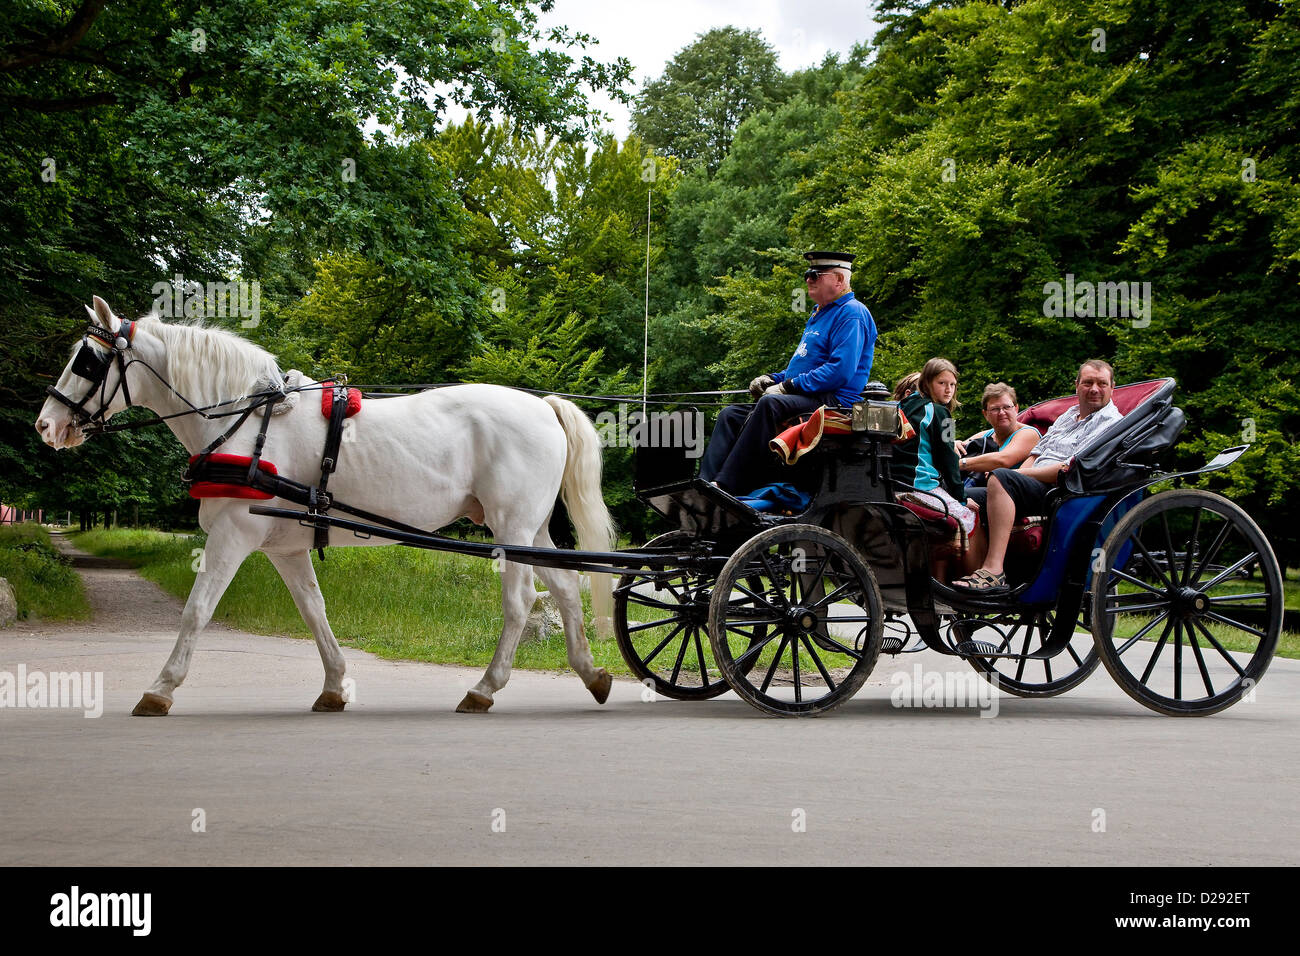 Sightseeing in a Hackney carriage i - Stock Image